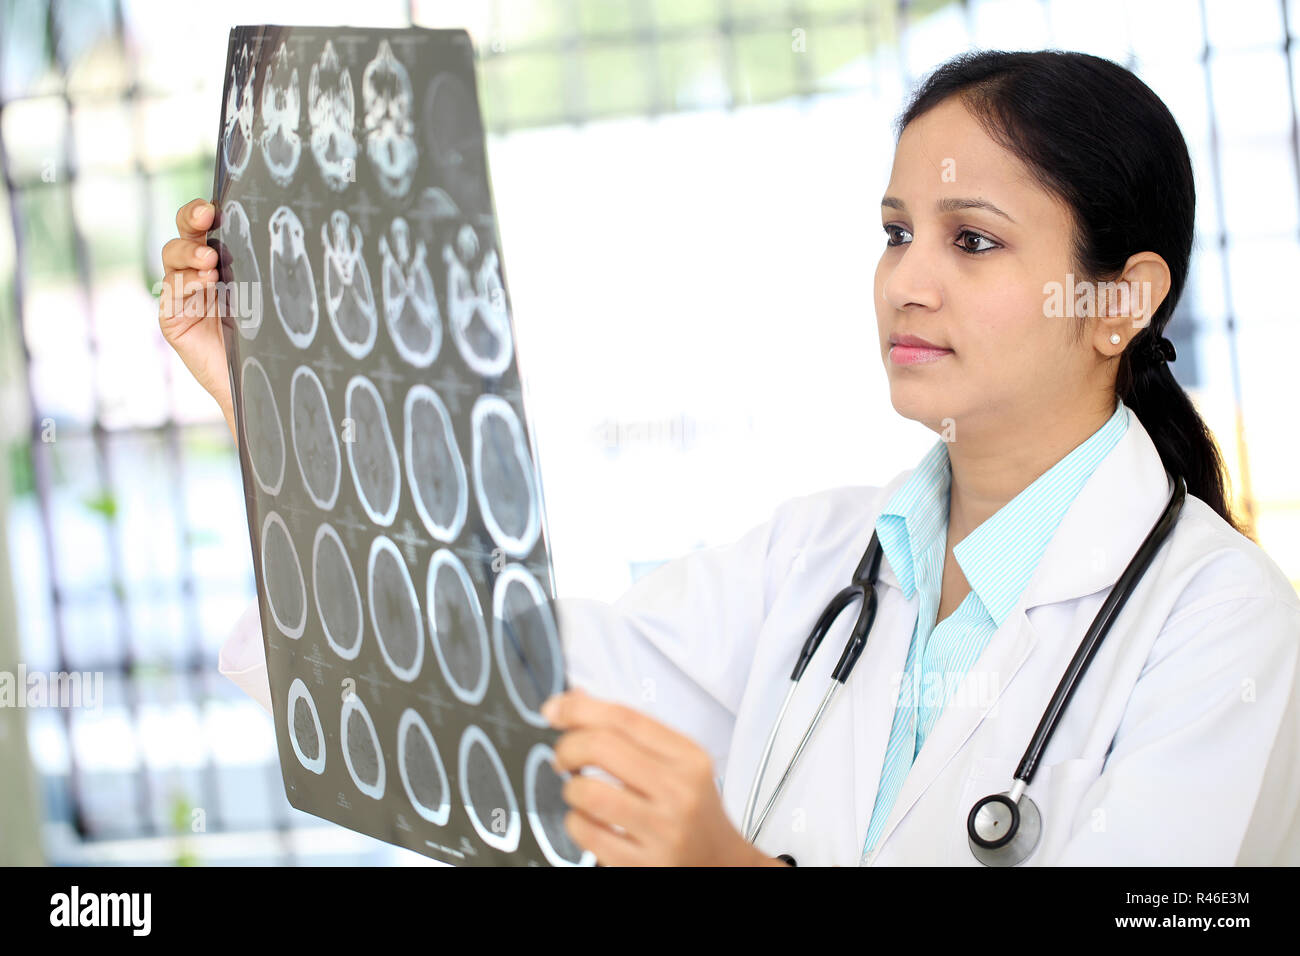 Female doctor examining a brain computerized tomography scan - Stock Image